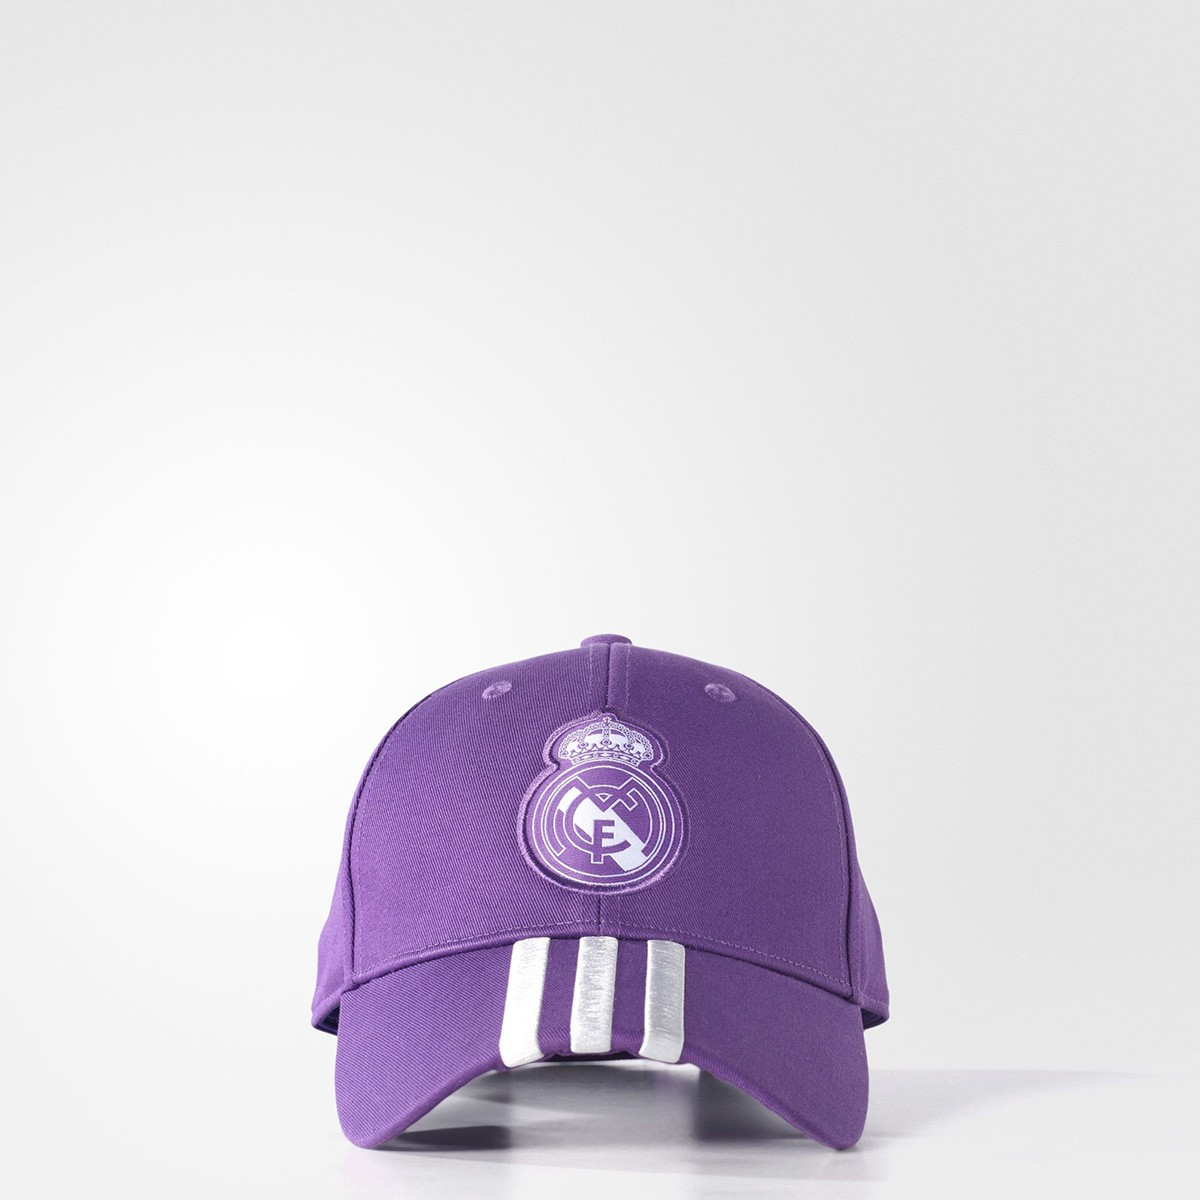 Boné Real Madrid Adidas 3-Stripes 10a075b842a